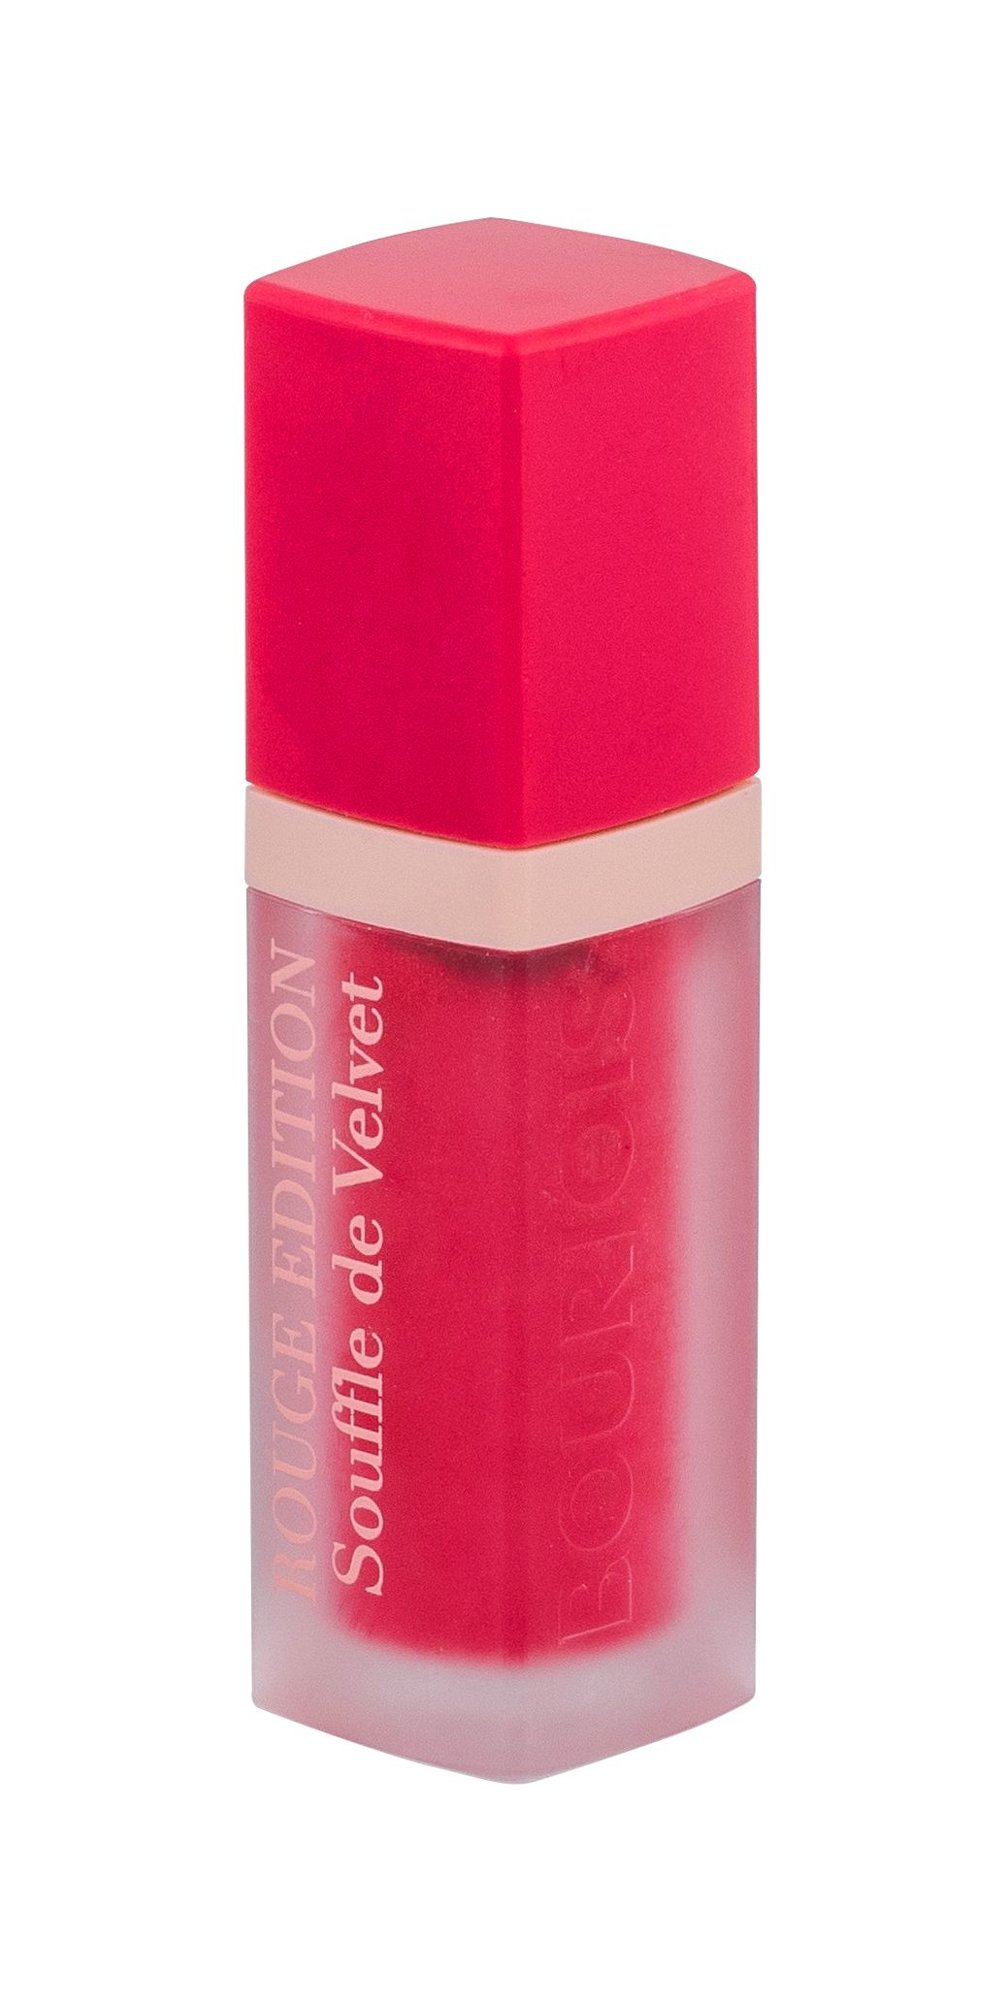 BOURJOIS Paris Rouge Edition Cosmetic 7,7ml 05 Fuchsiamallow